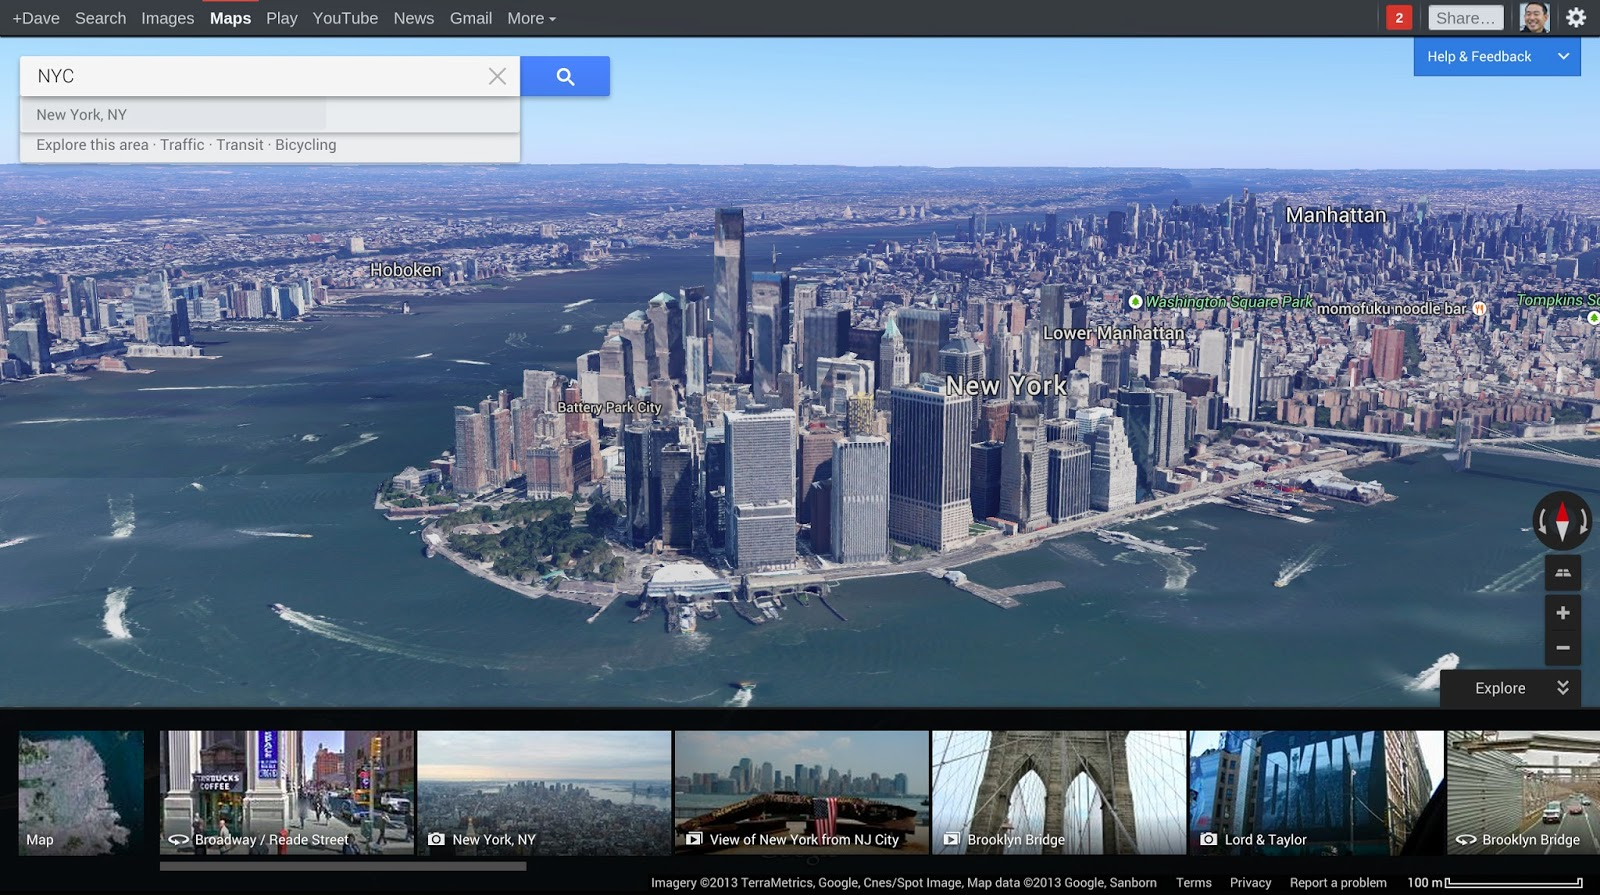 New York City in redesigned Google Maps with Explore box (2013)